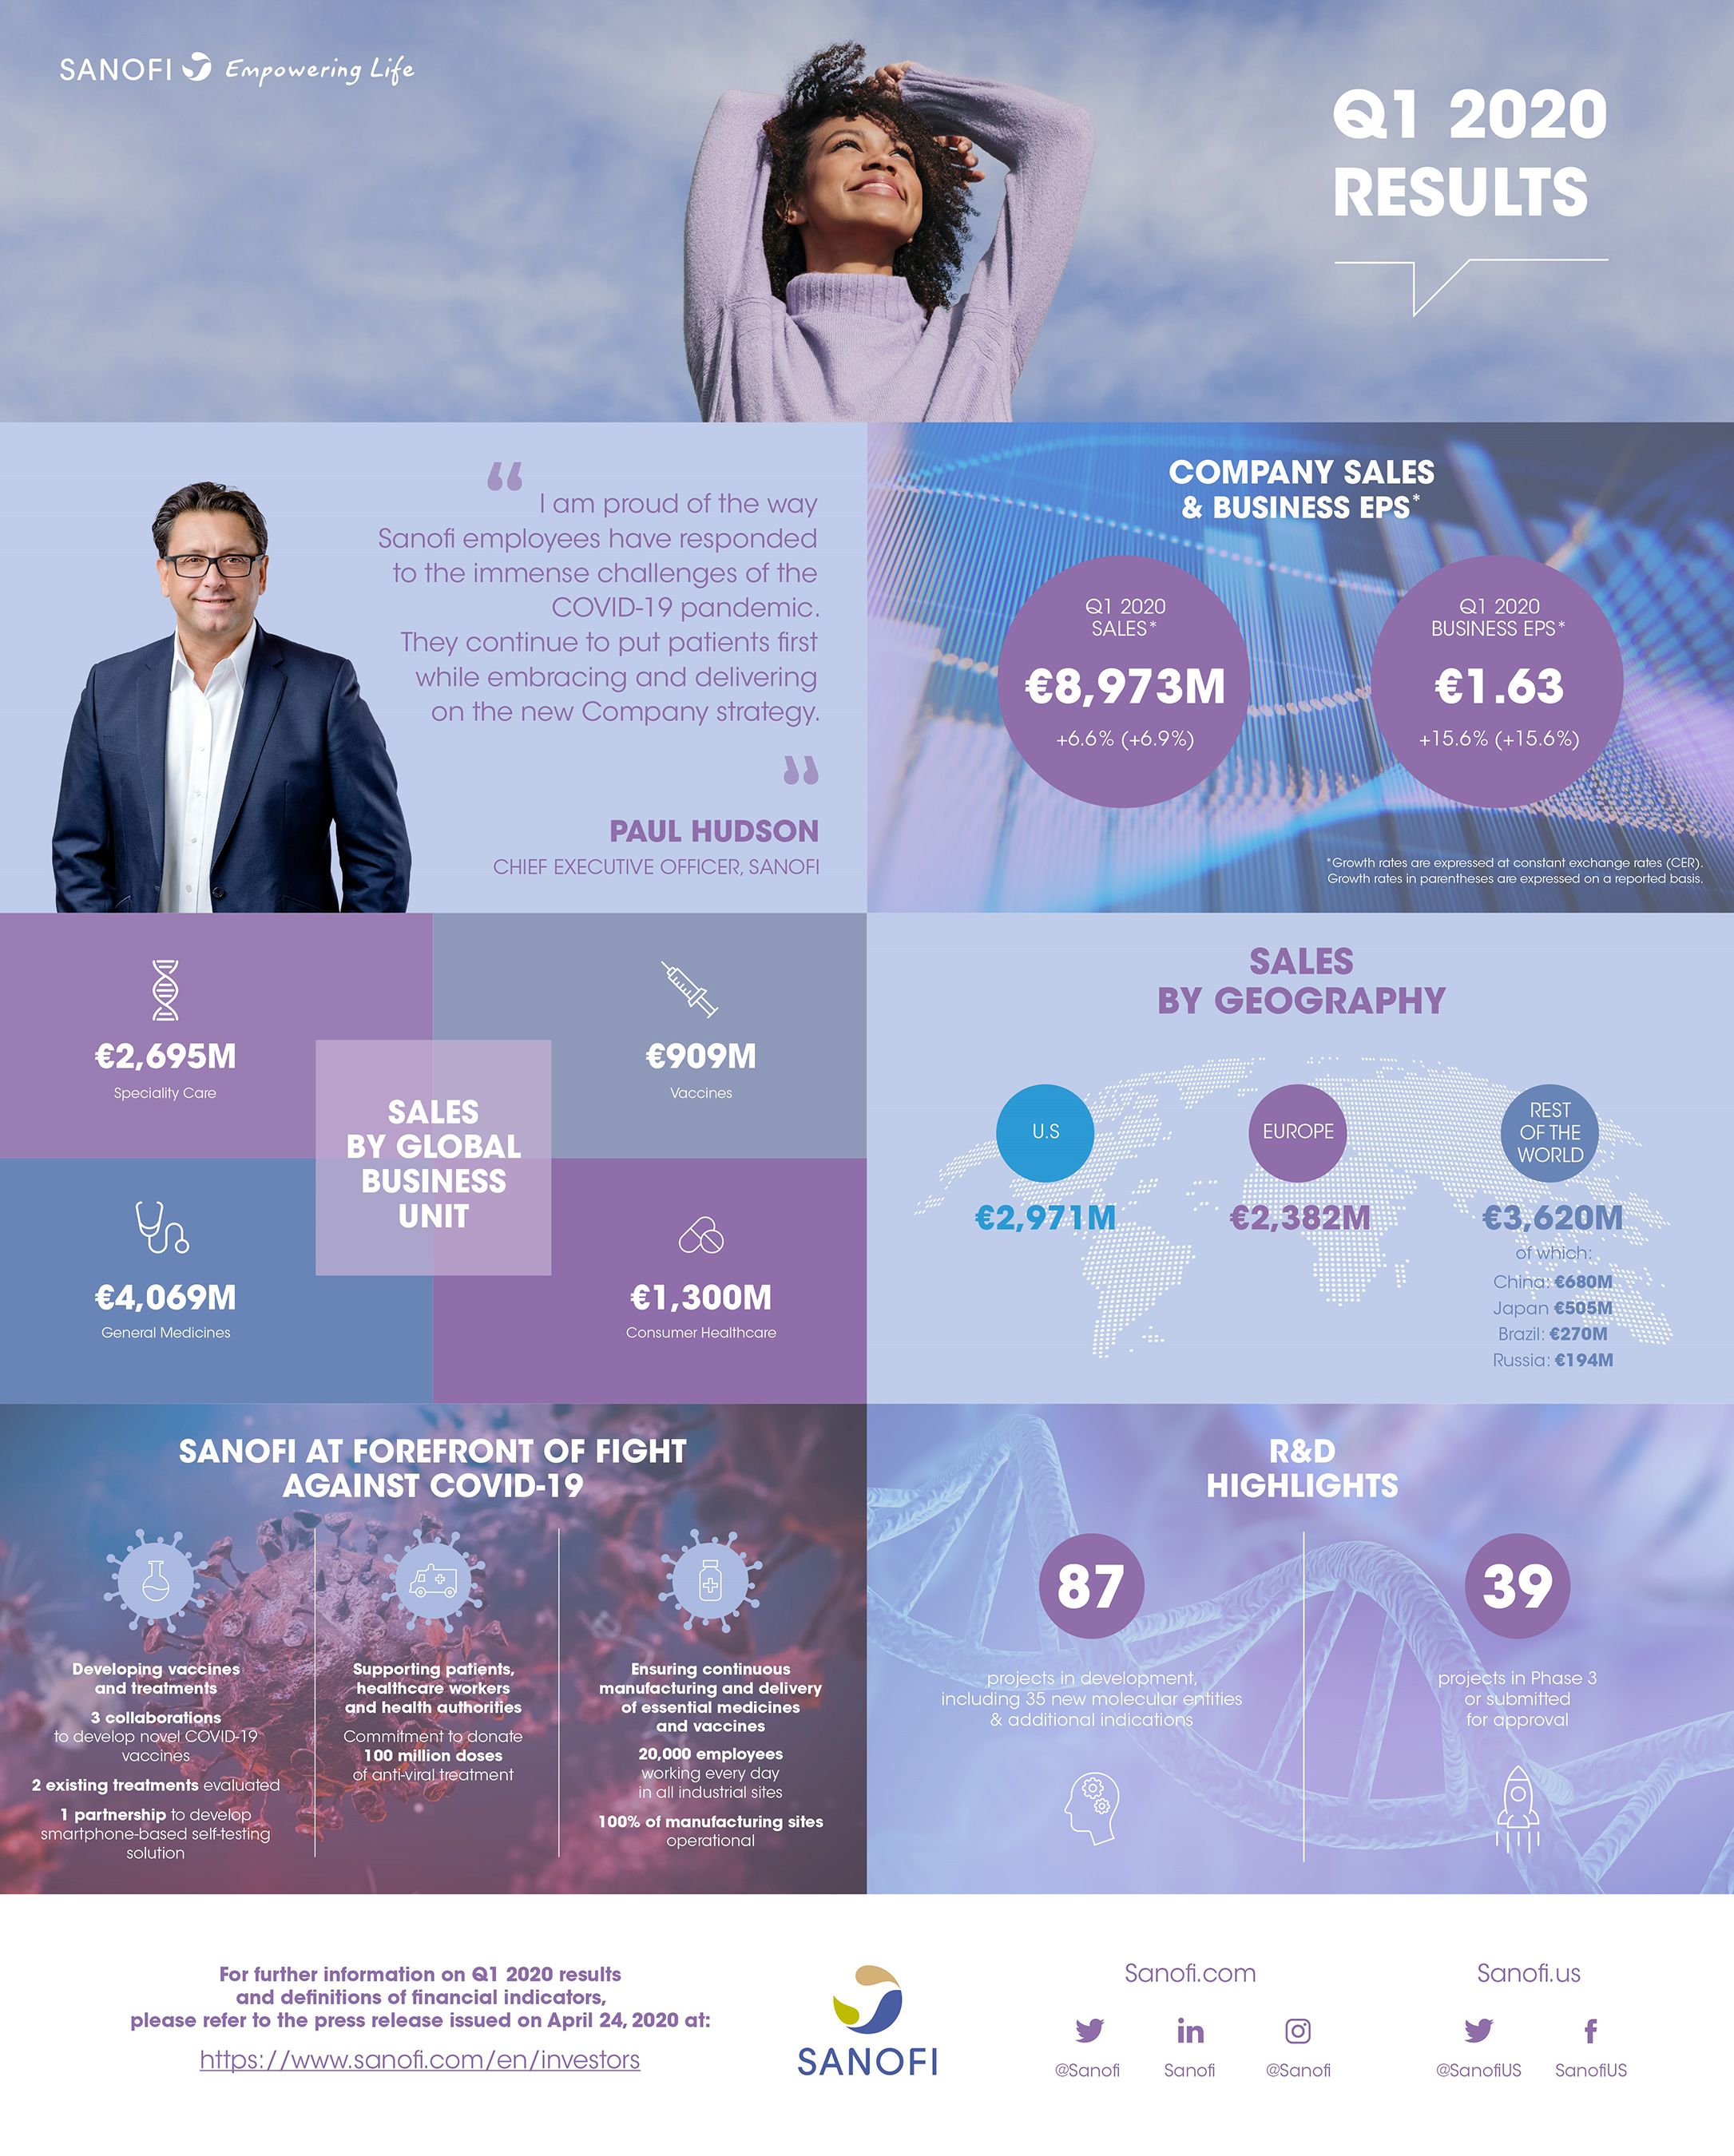 Sanofi 2020 Q1 Earnings Results Infographic